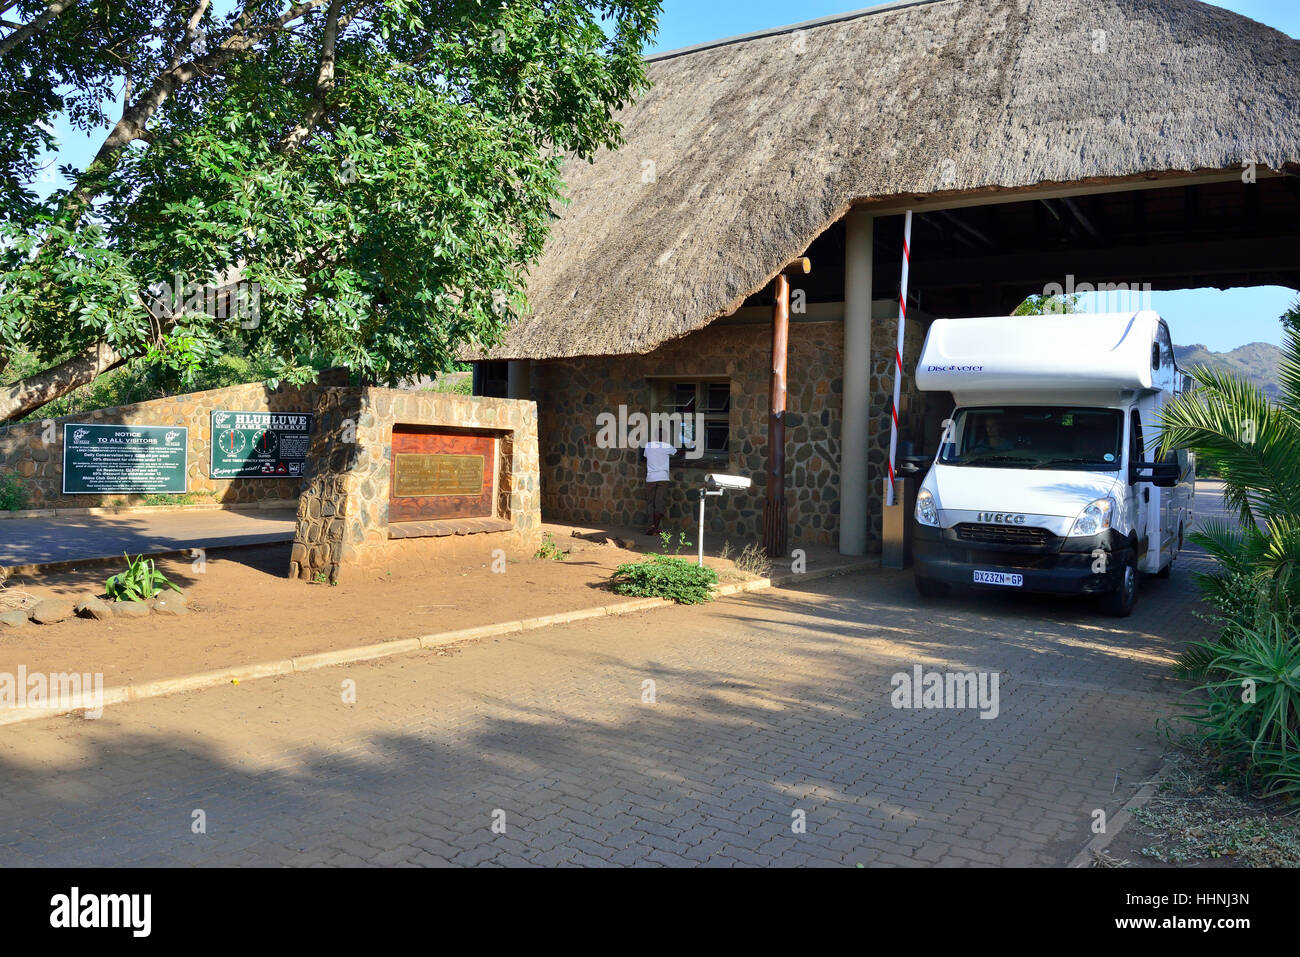 Motorhome checking out of the security gates  to the entrance to Hluhluwe-Imfolozi Park south africa - Stock Image